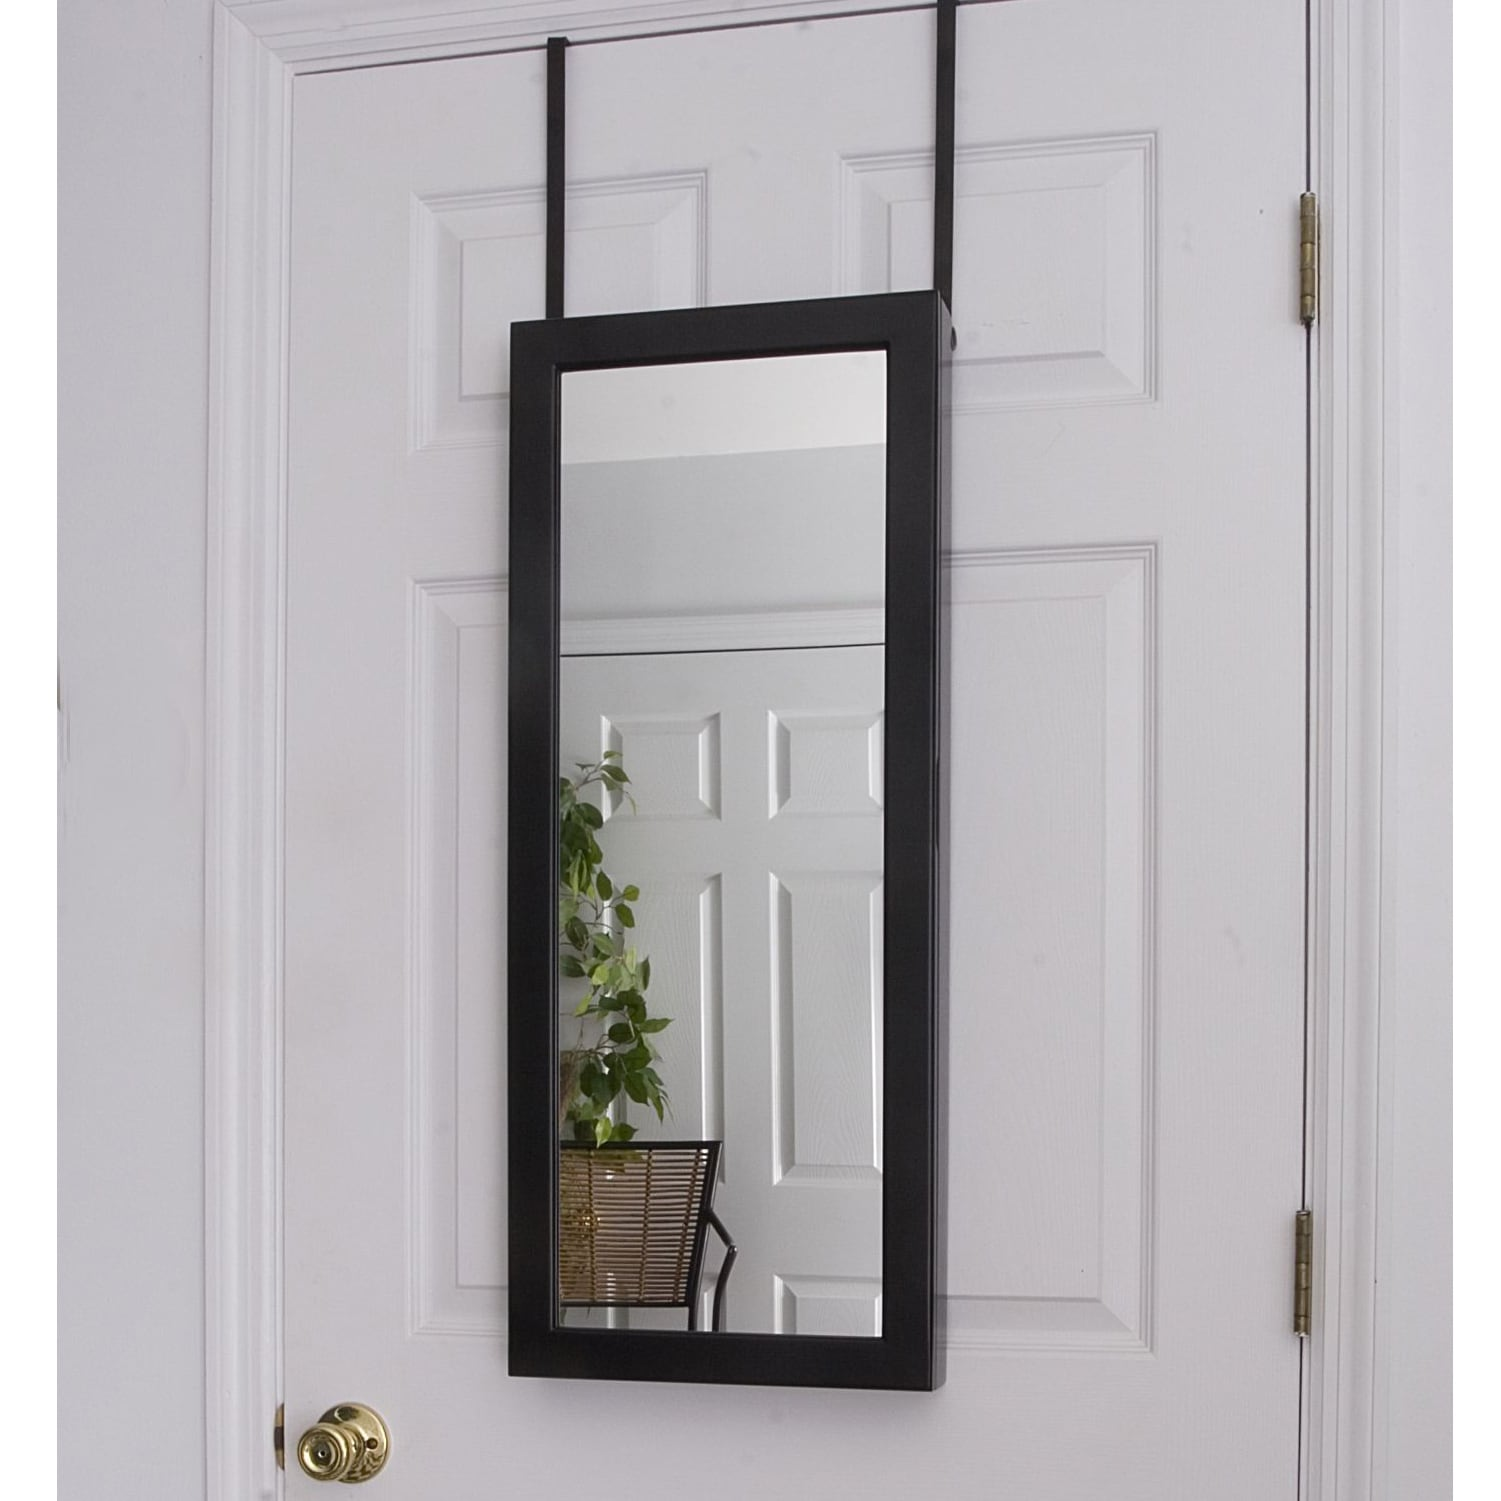 Space Saving Over-the-Door/ Wall Hanging Mirrored Jewelry Armoire